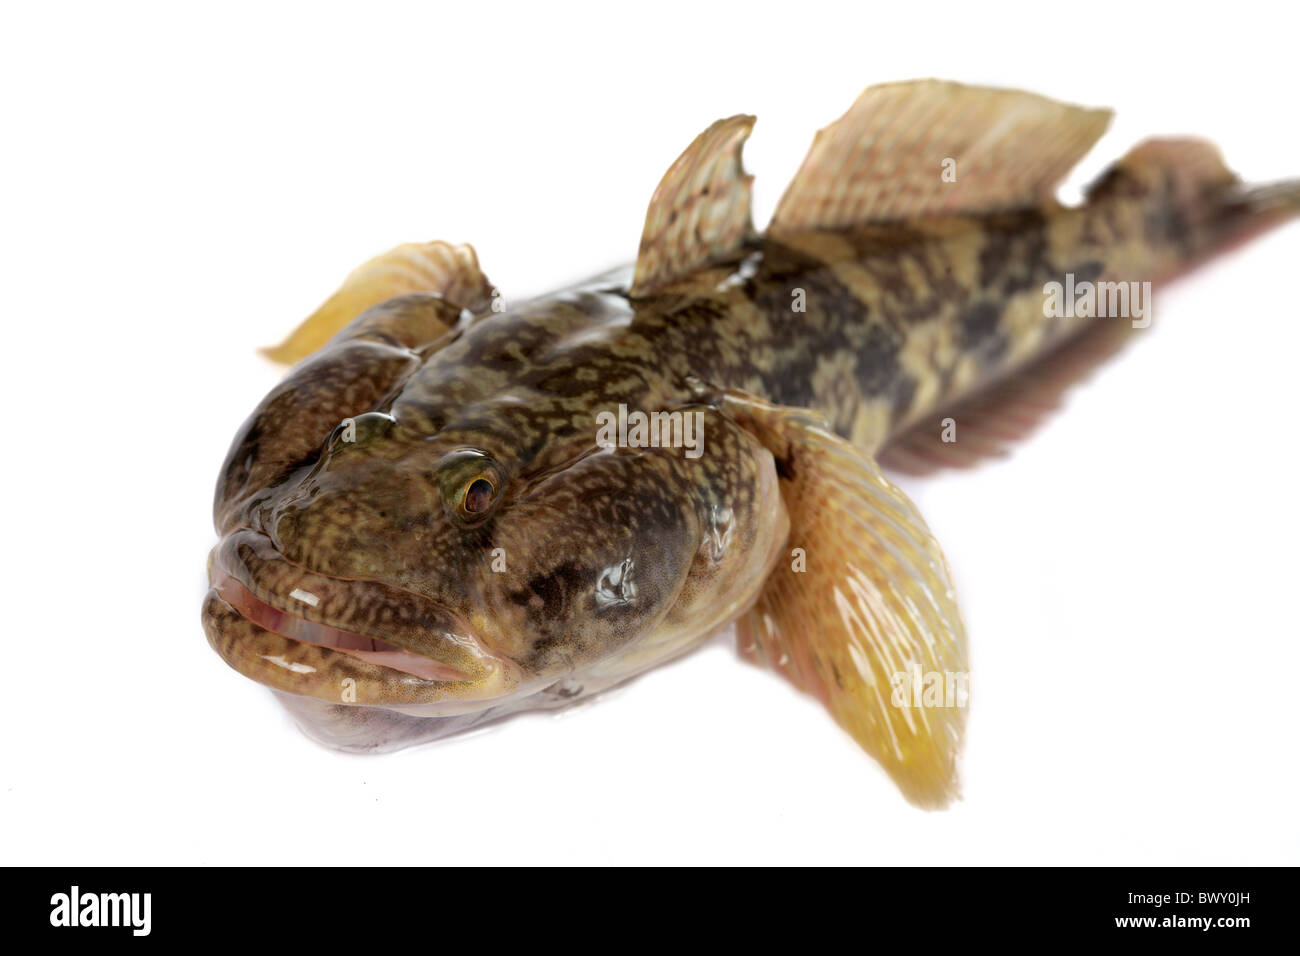 One of the largest Gobiidae reservoirs - Gobiidae-a whip lives in Black sea and his  numerous estuaries, occupies - Stock Image